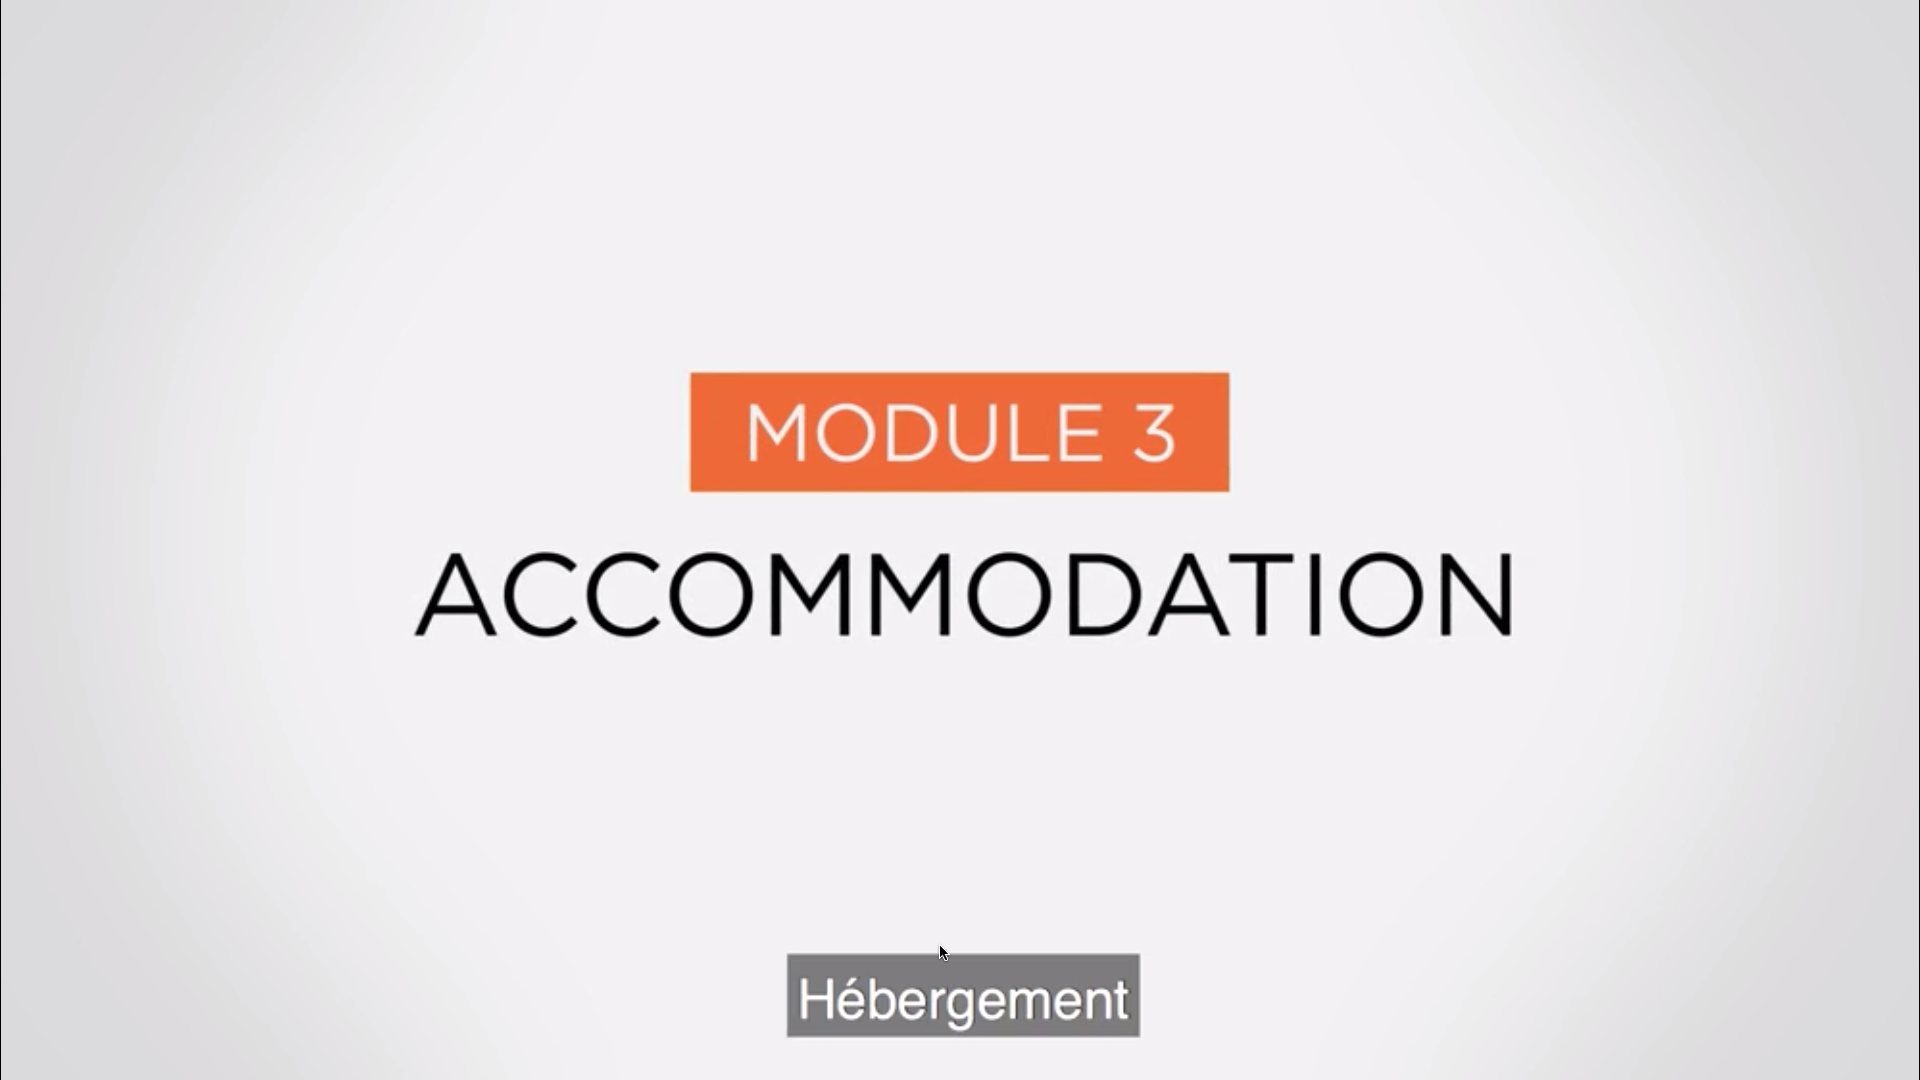 Module 3 - Accomodation